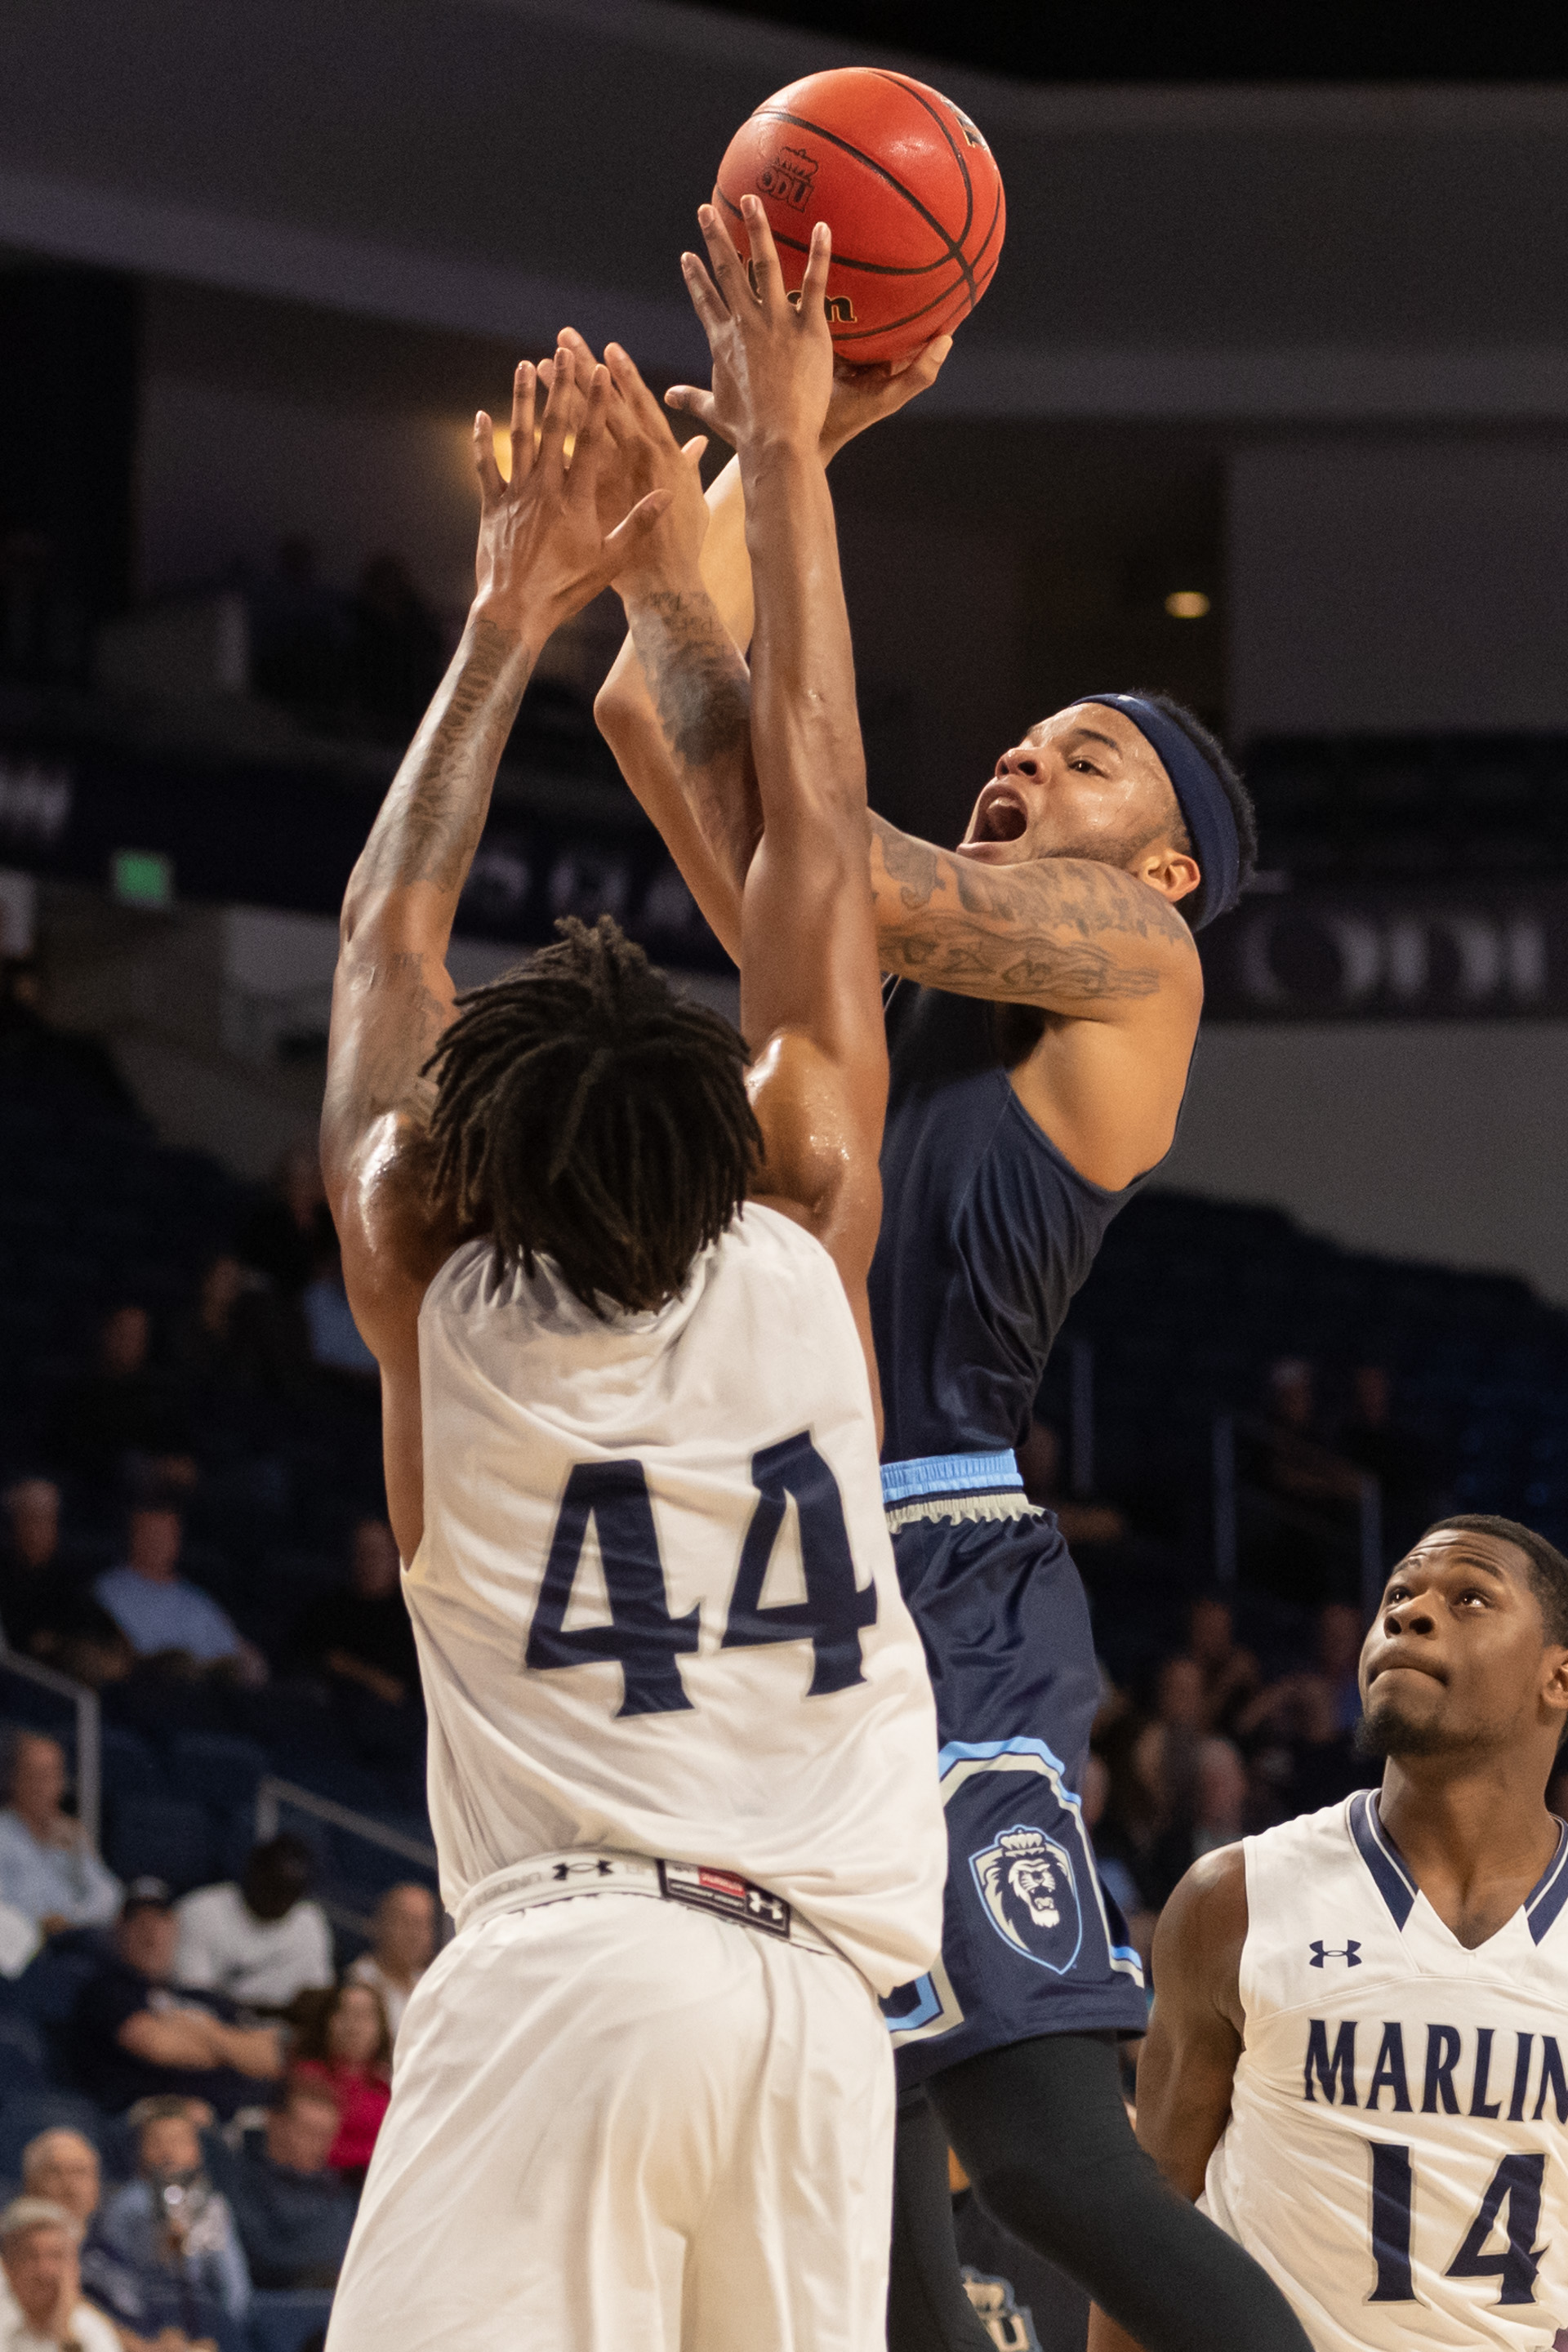 Mens Basketball: Virginia Wesleyan vs Old Dominion